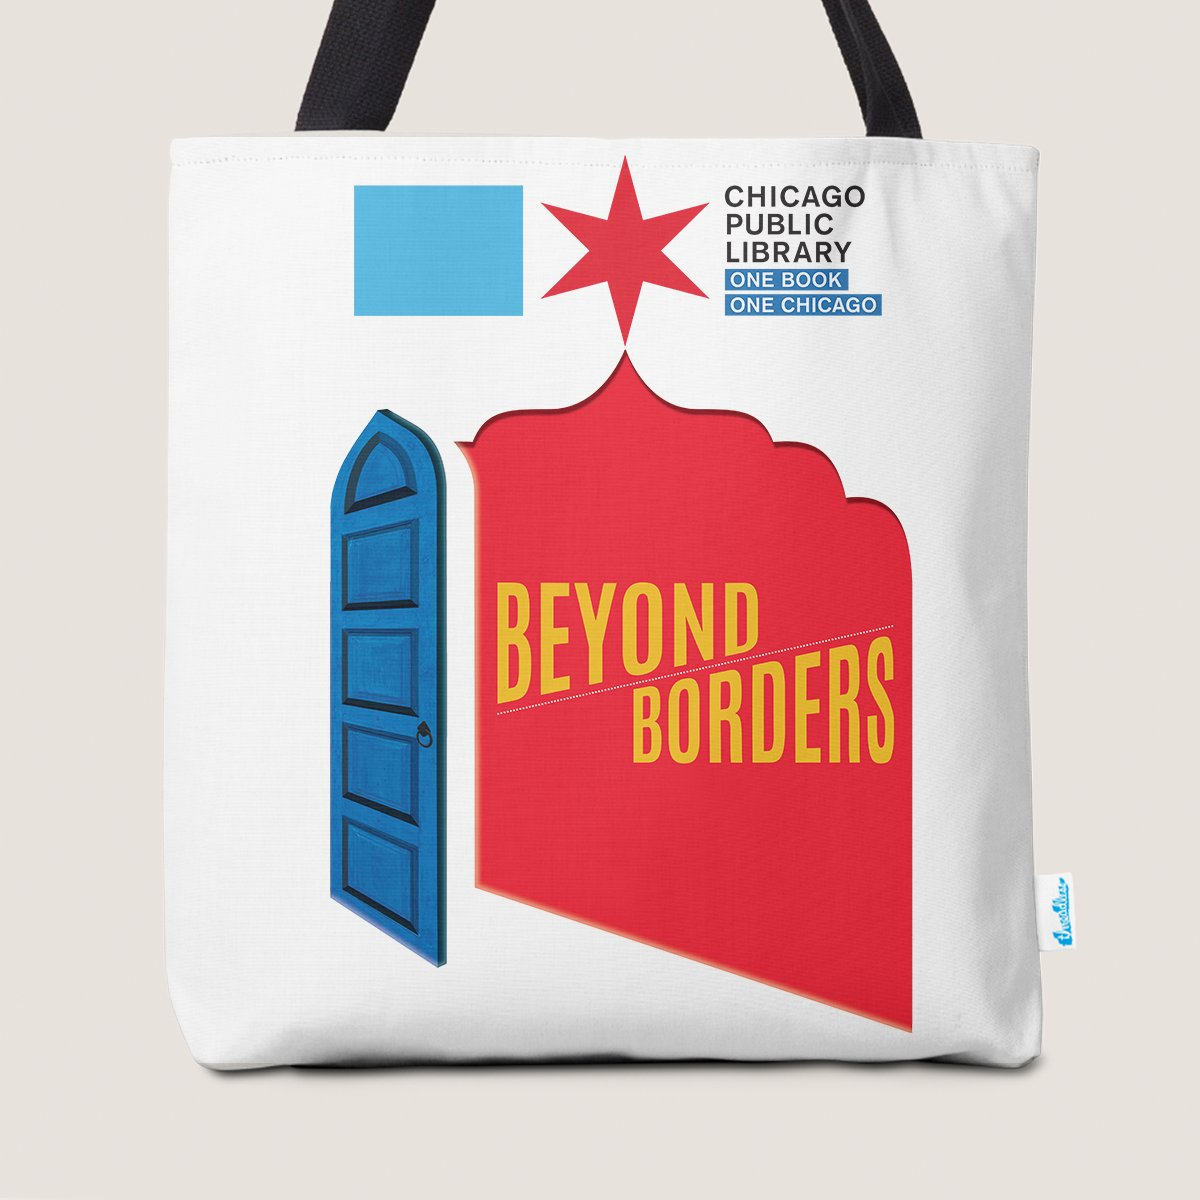 Have you seen the cool designs in our @threadless store for this season of #OBOC? A portion of your purchase benefits @CPLFoundation which provides funding for #OBOC and other @chipublib programs https://t.co/rmHnnhPOSF https://t.co/tMMTpJ2g5w